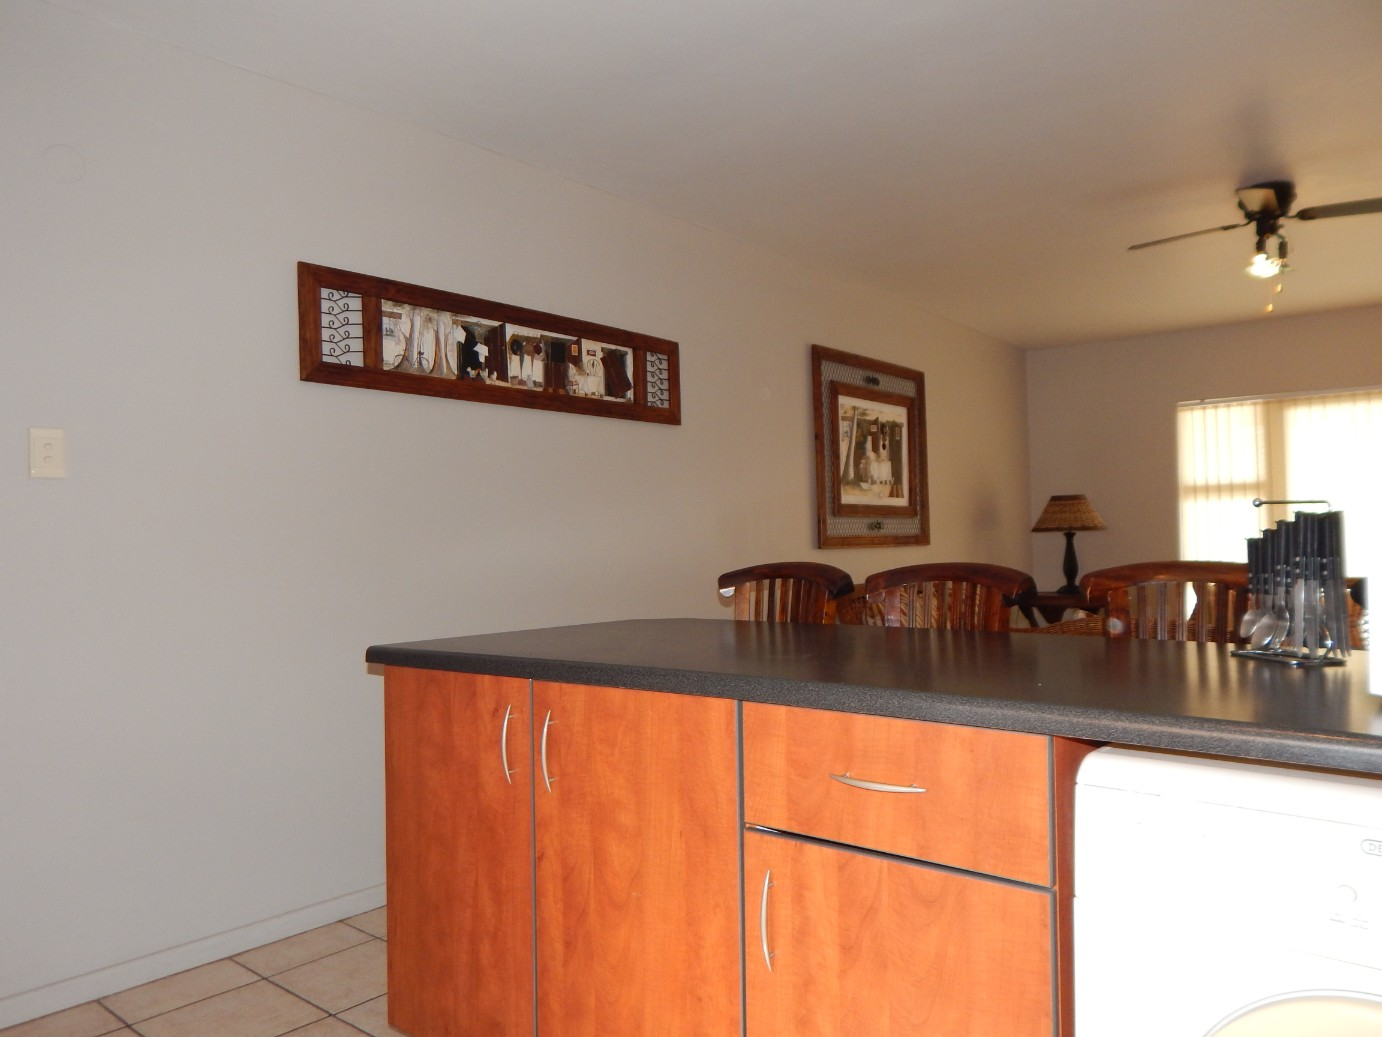 3 Bedroom Apartment for sale in Diaz Beach ENT0080239 : photo#8